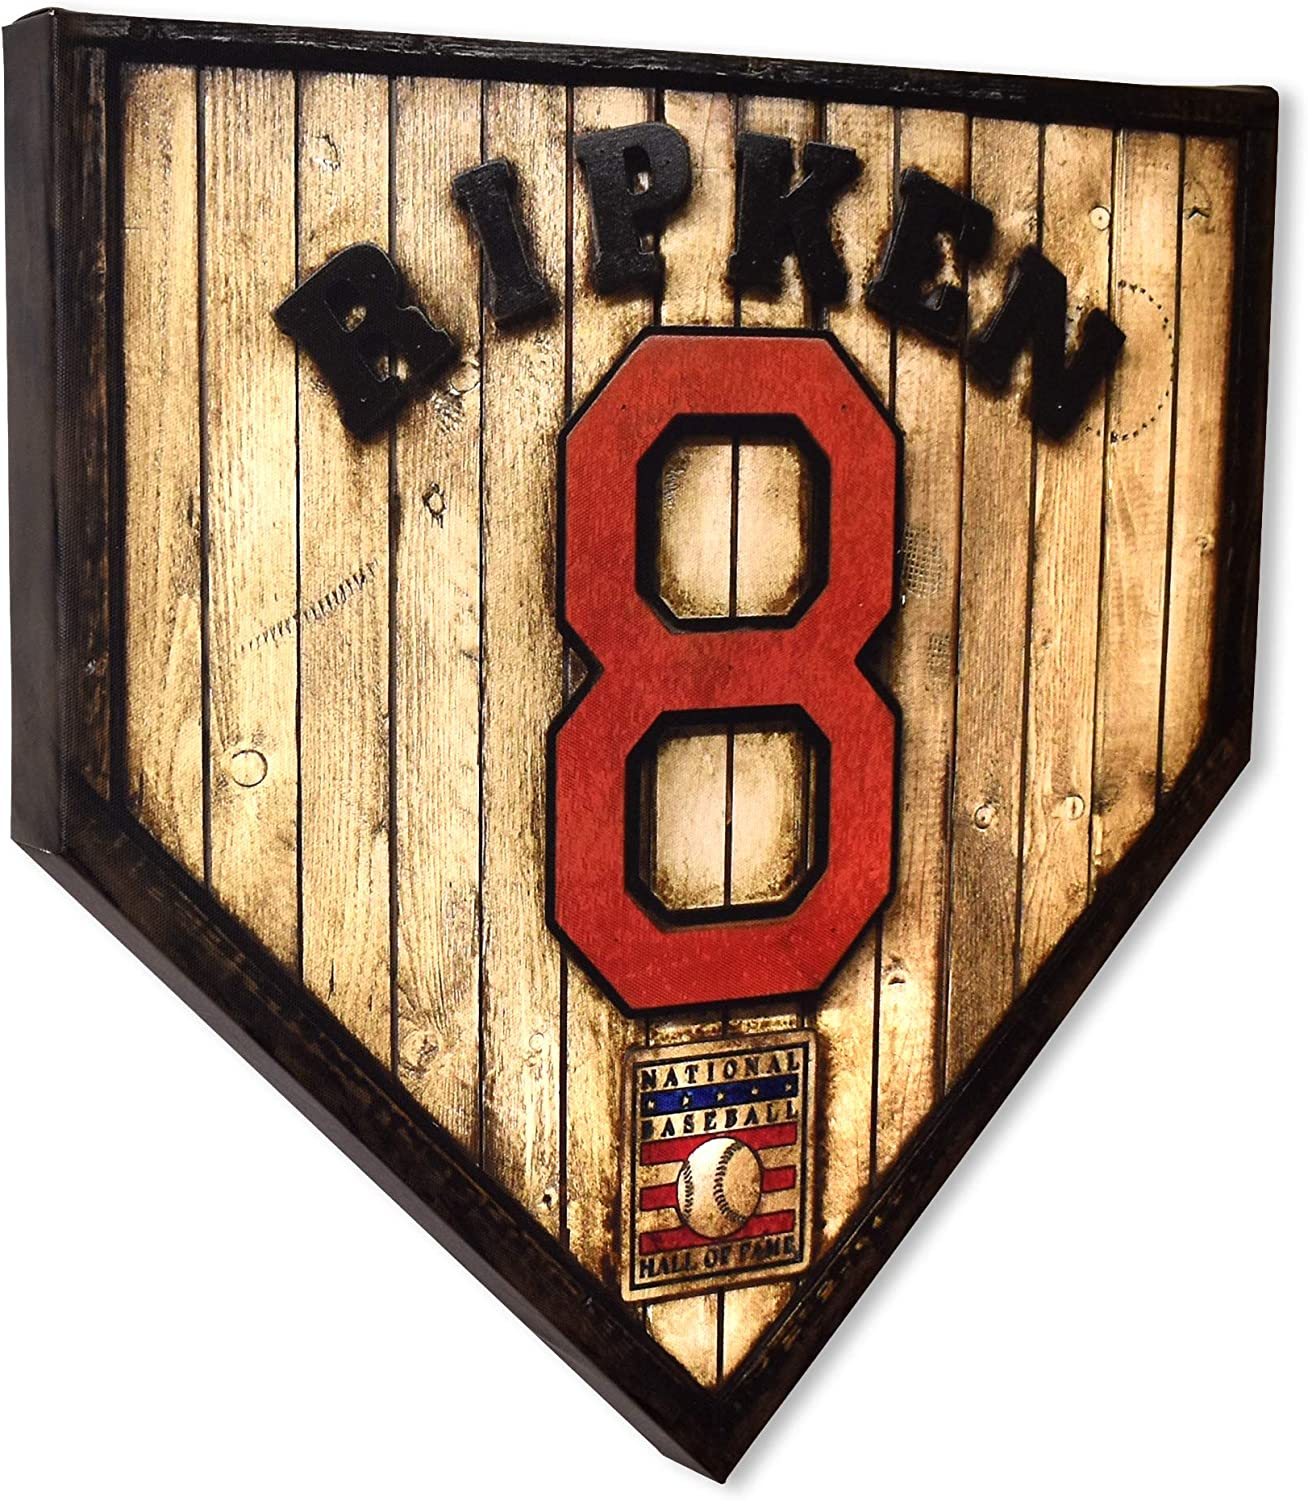 """COLLECTIBLE CANVAS Cal Ripken Jr. Home Plates, Sports, Wall Art for Bedroom, Nursery, and Other Parts of The House Or Dorm, Wall Decorations with Baseball Or Sports Theme 17"""" x 17"""" x 1.5"""""""